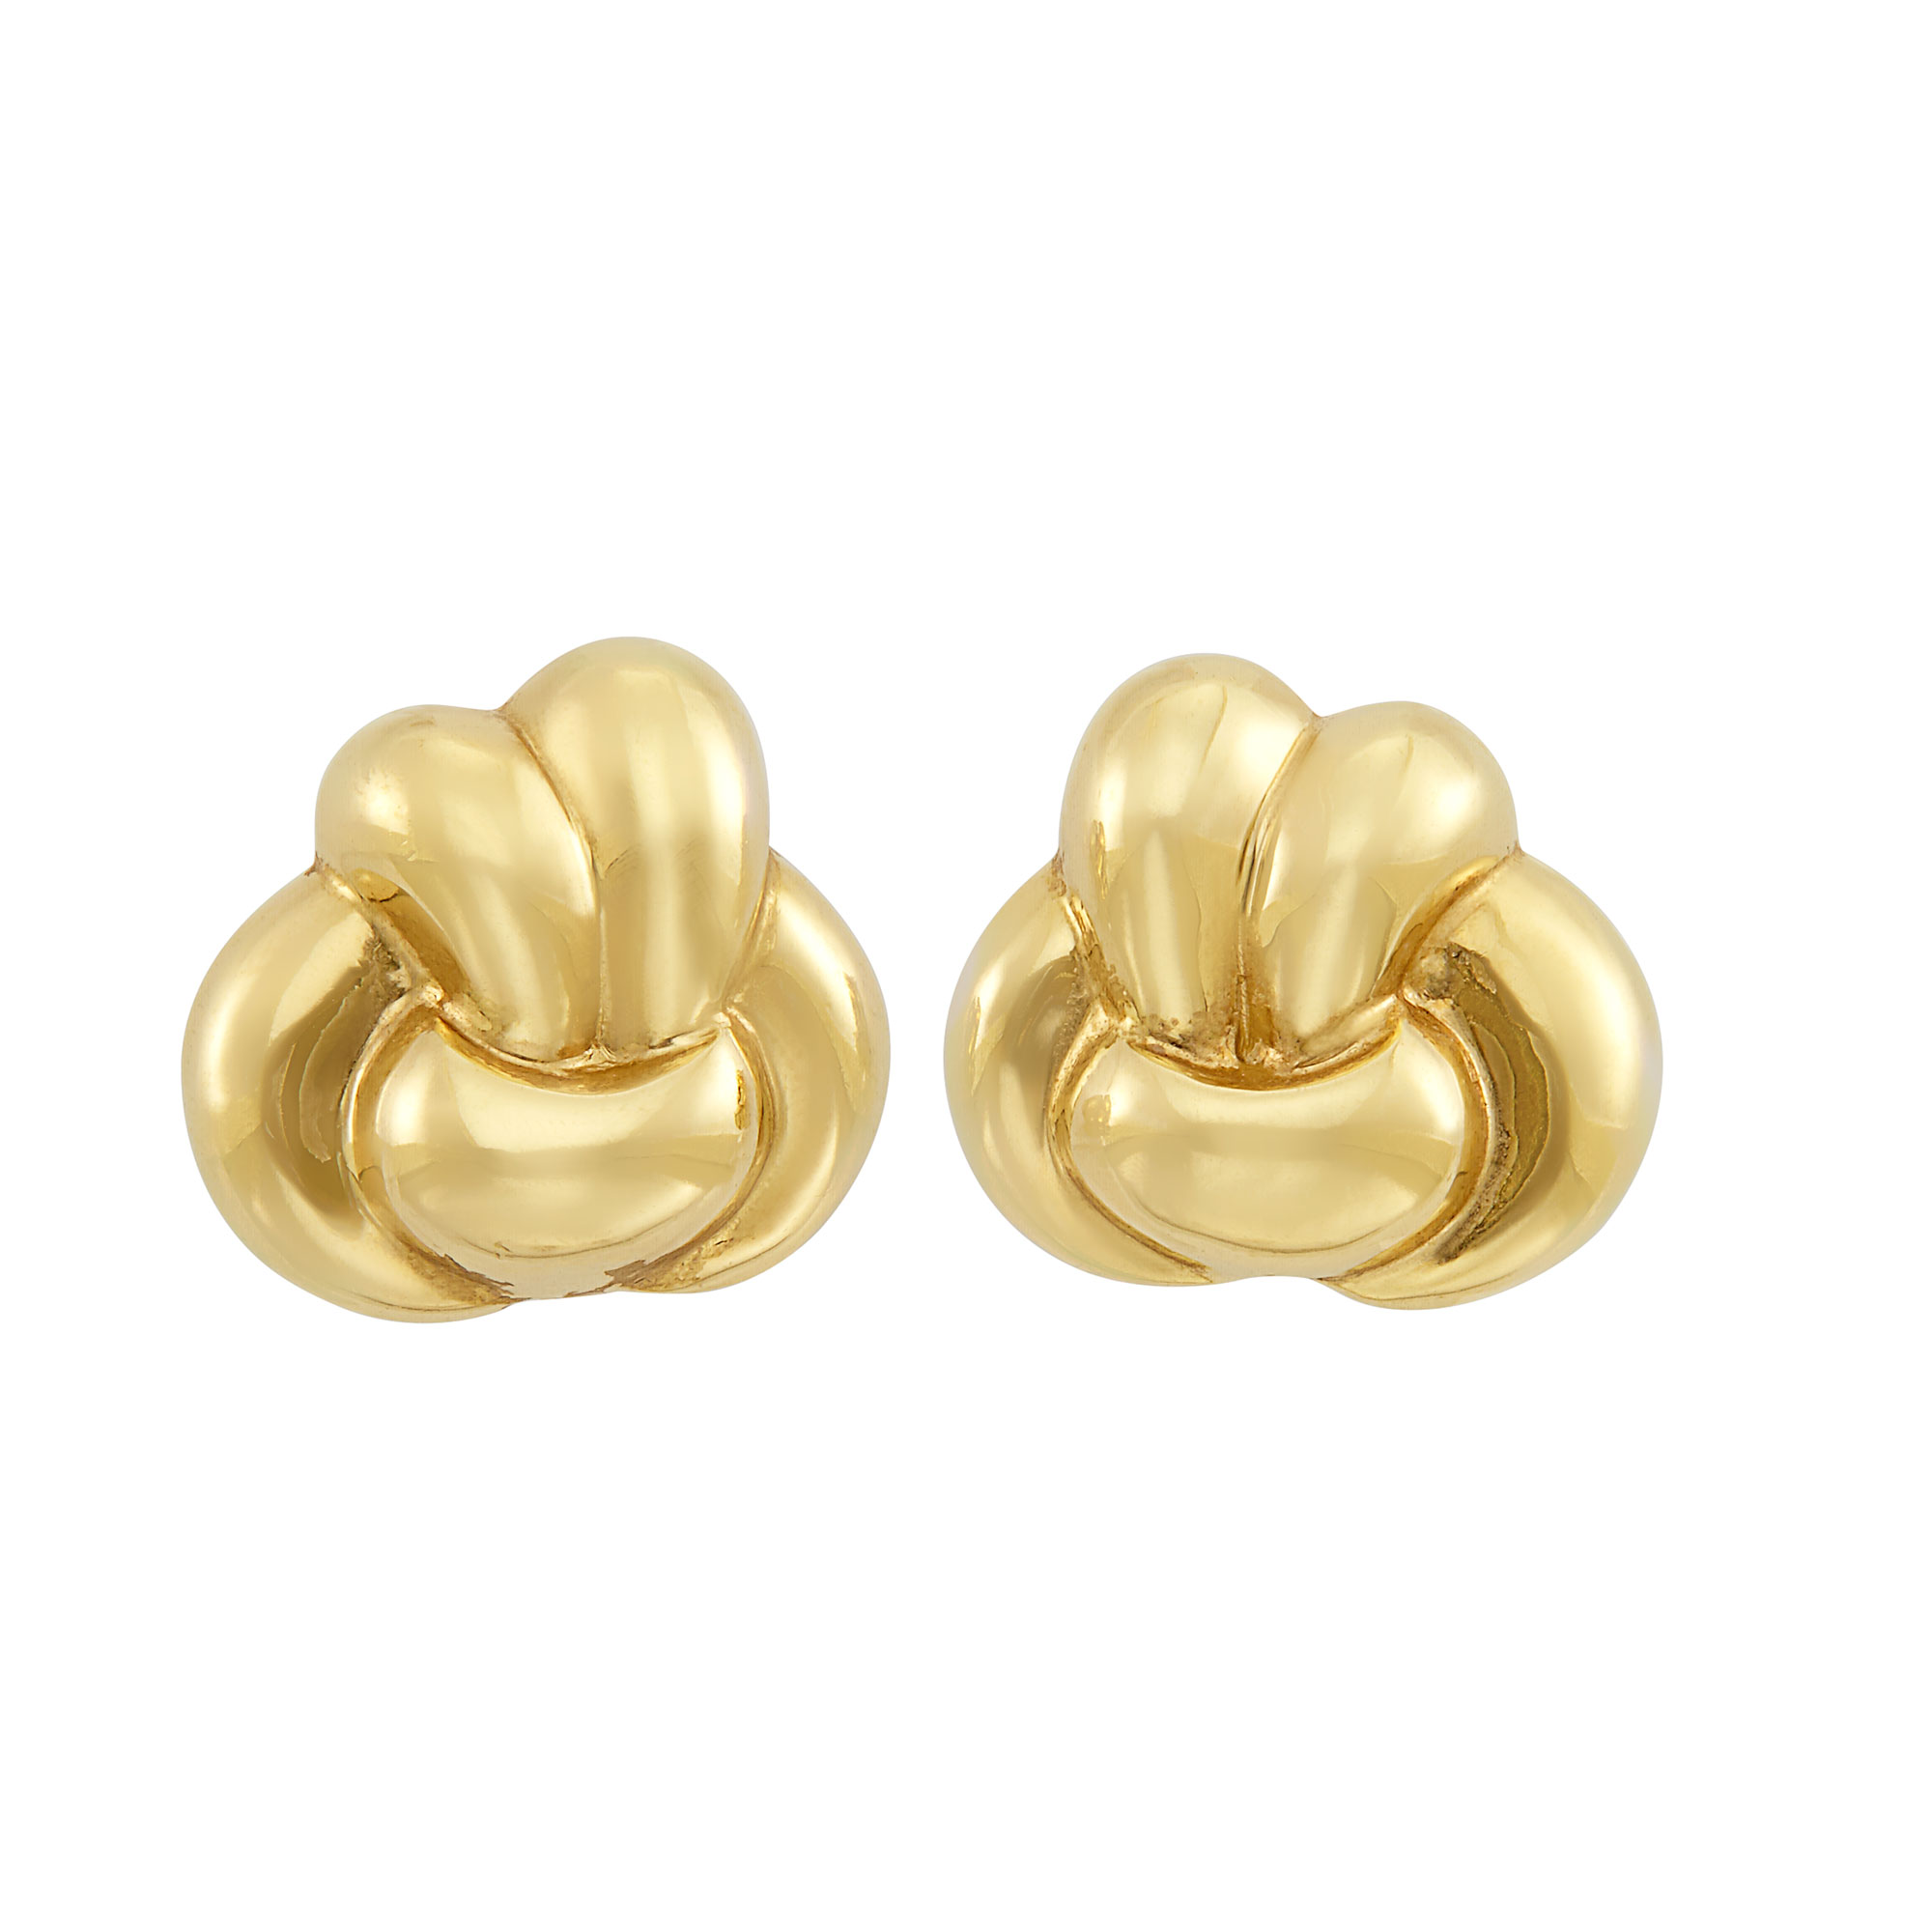 Lot image - Pair of Gold Knot Earclips, Verdura